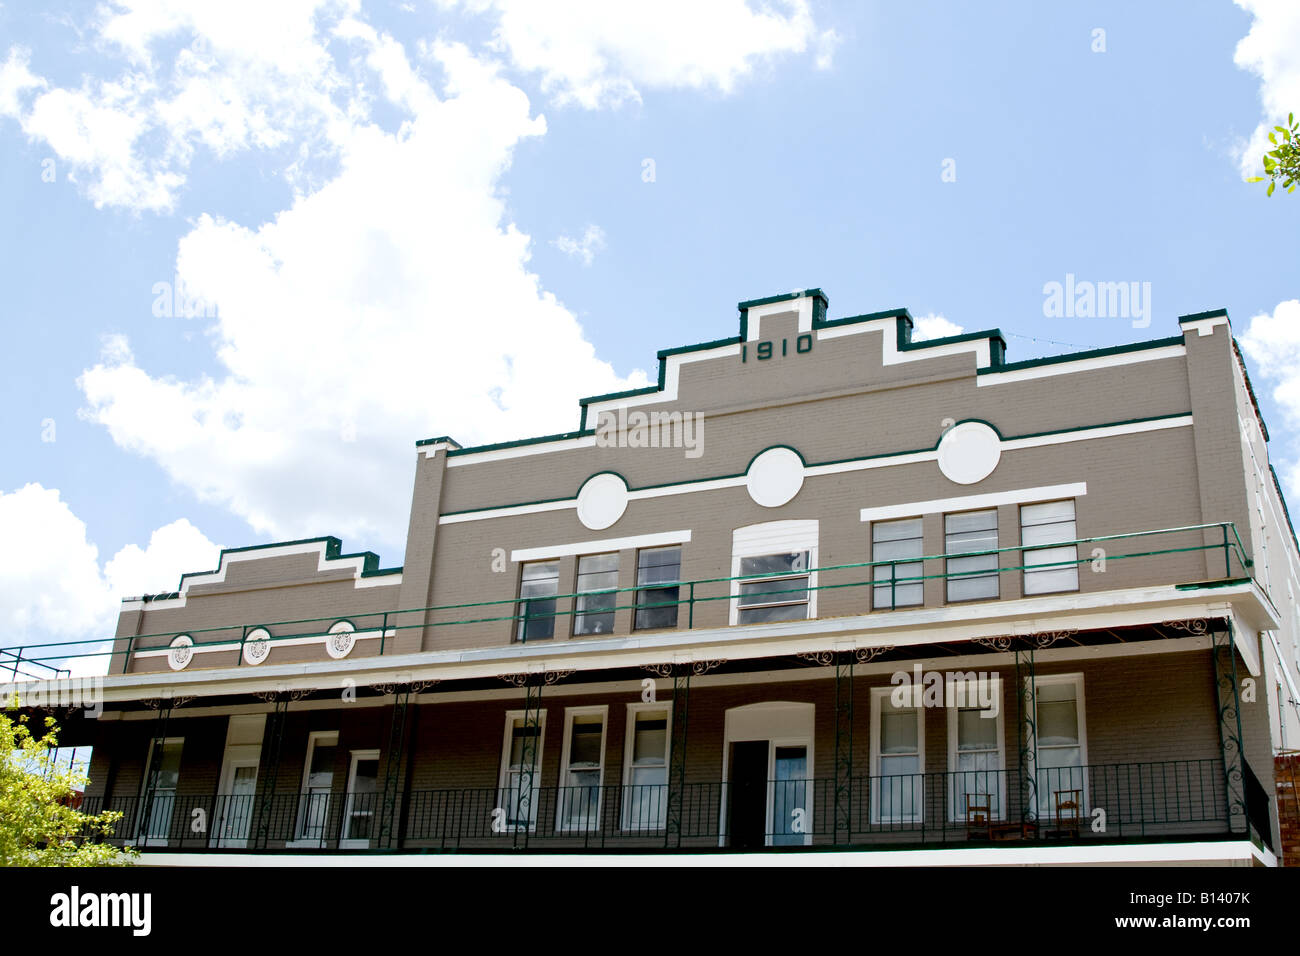 Two upper stories of a 1910 antique building against a blue sky near Orlando, Florida - Stock Image